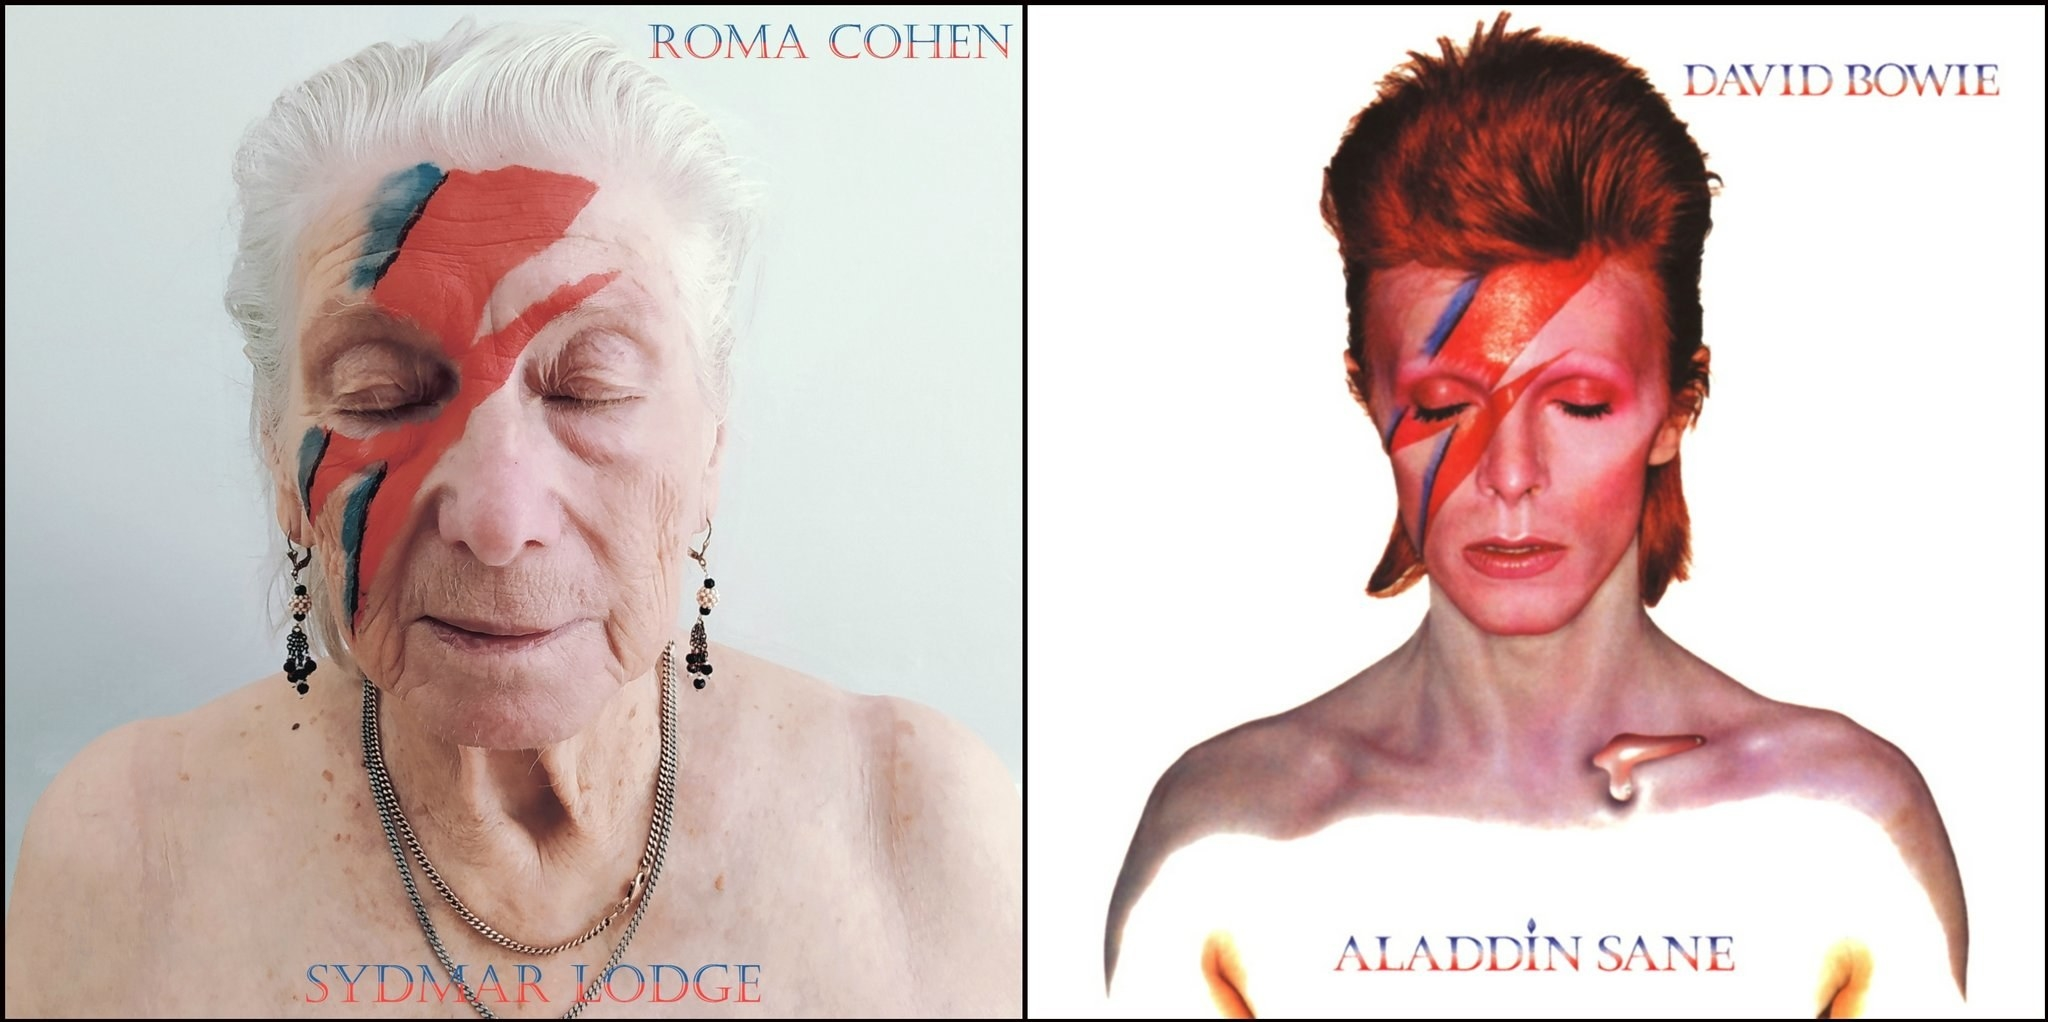 An elderly woman recreating David Bowie's Aladdin Sane album cover